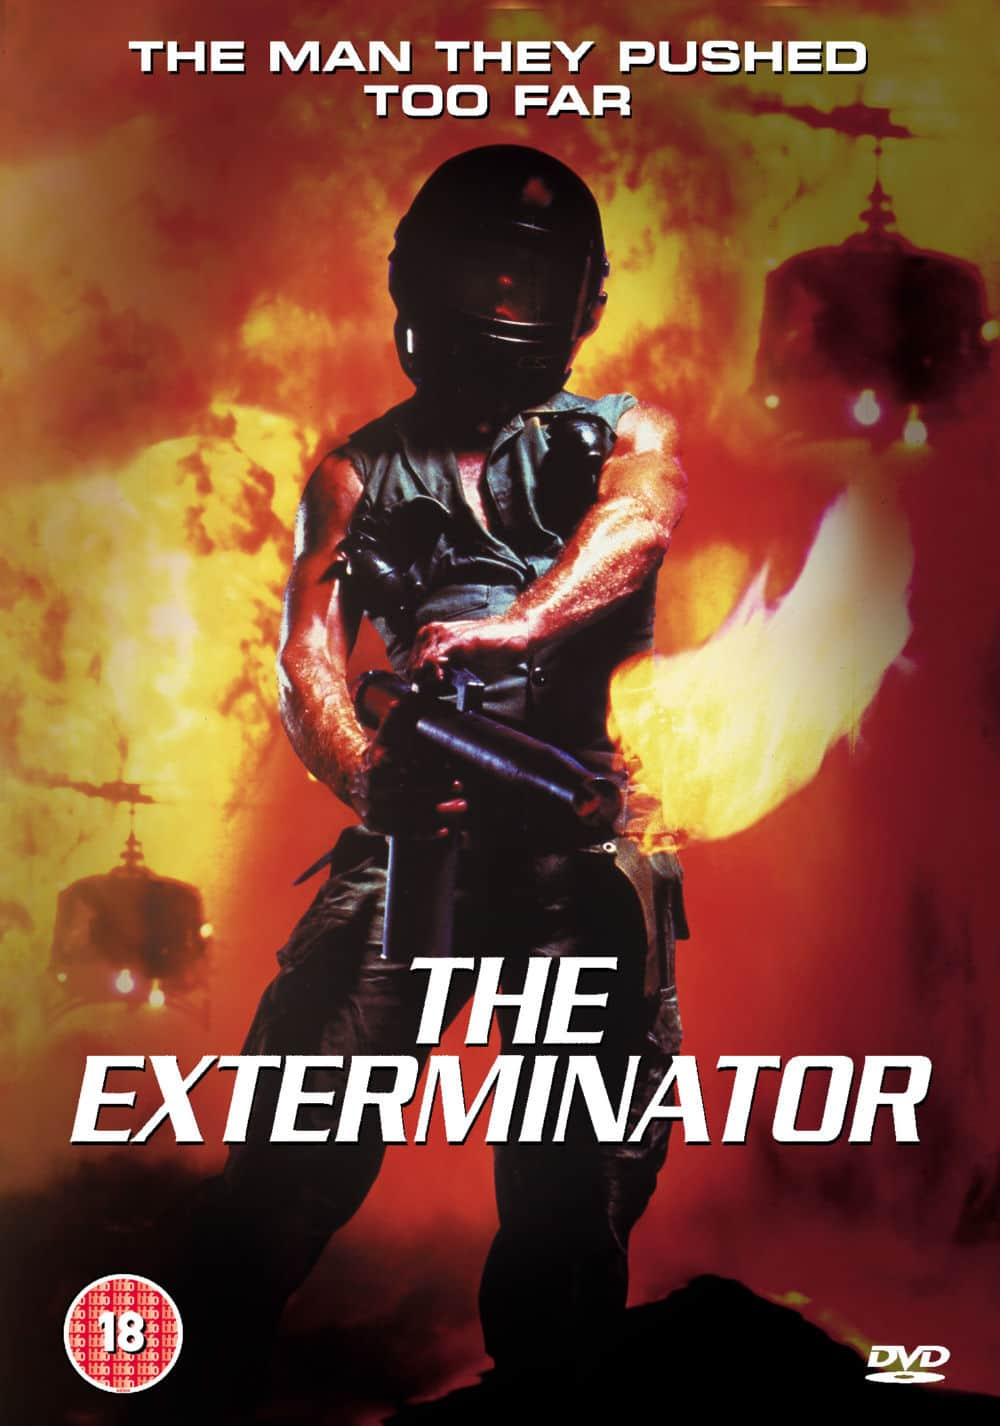 film reviews | movies | features | BRWC Review: The Exterminator